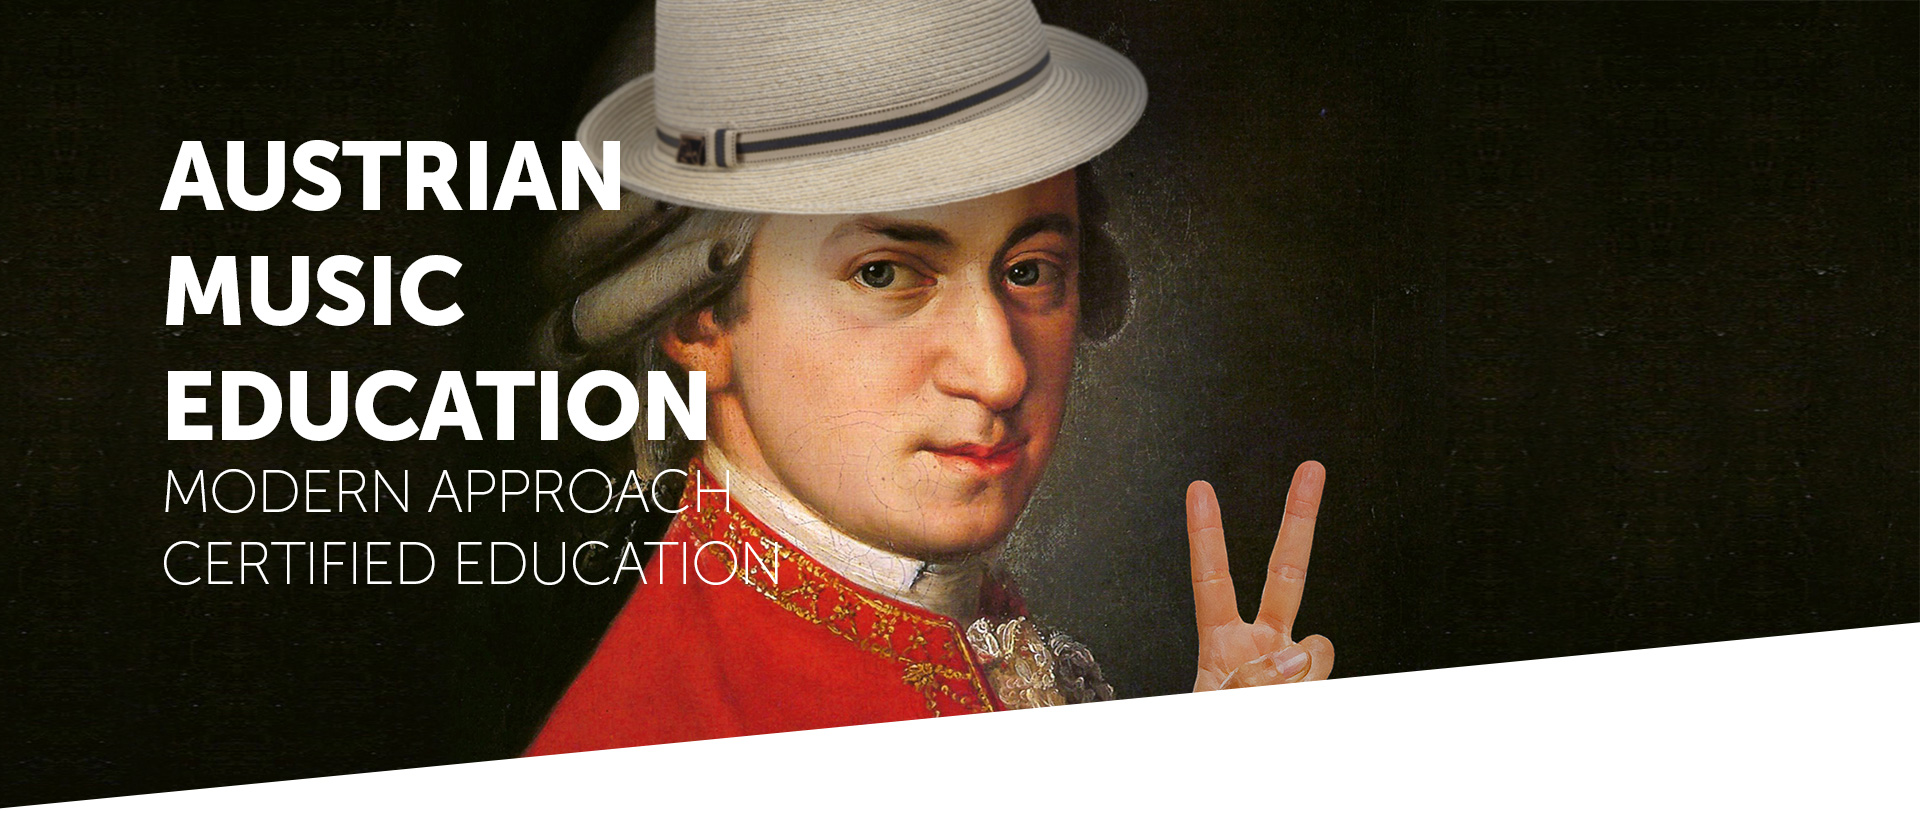 Austrian Music Education - Mozart